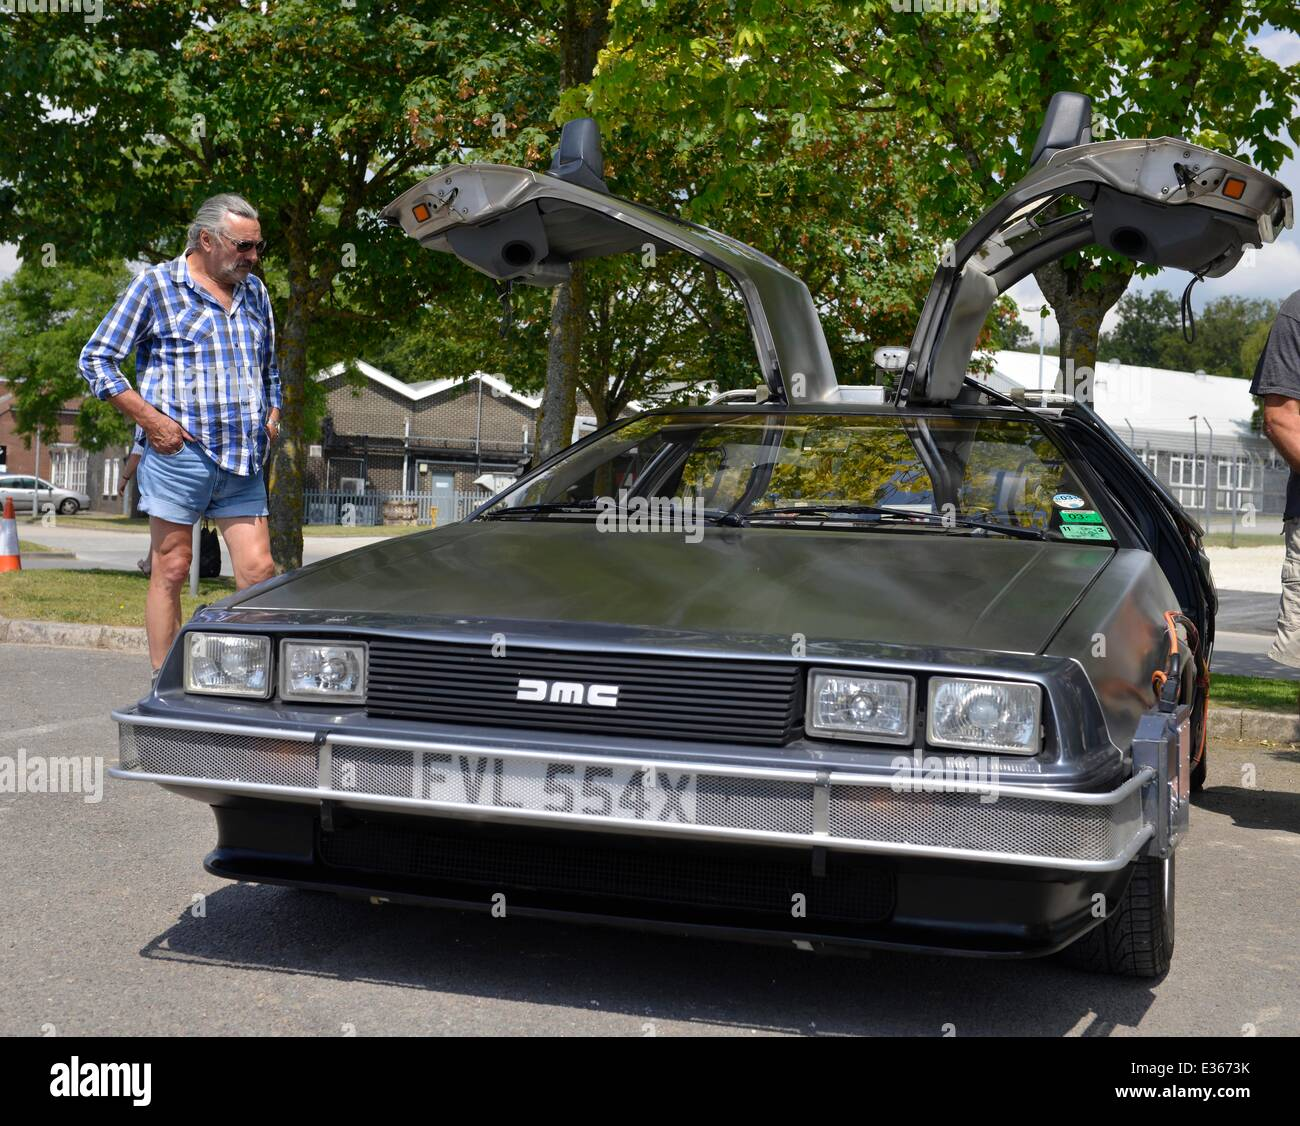 DeLorean cars owners rally, DeLorean classic car DMC-12, Britain. UK ...